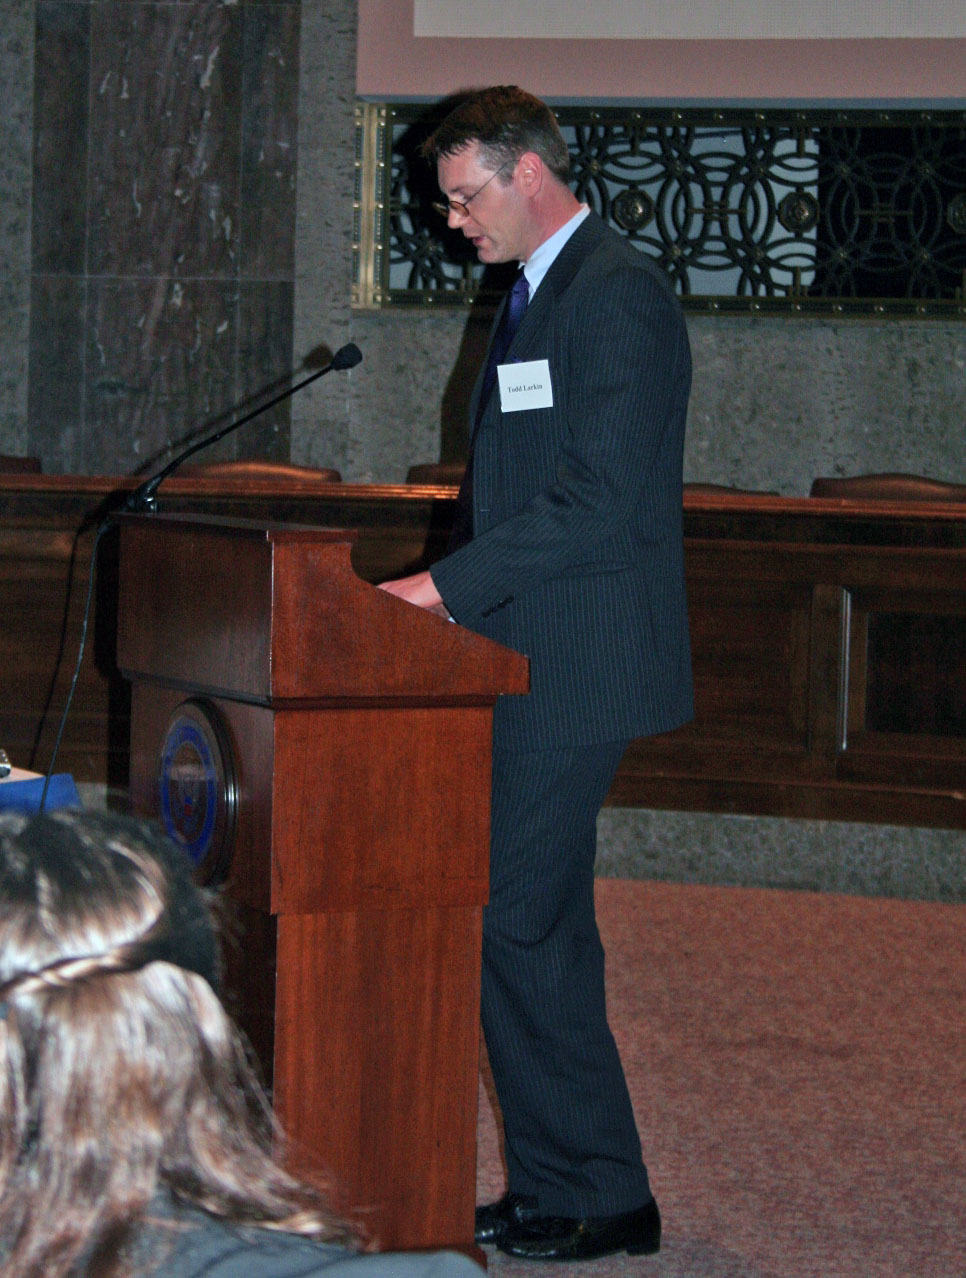 Larkin speaks before the United States Capitol Historical Society, Dirksen Senate Office Building, Washington, D.C., October 2007.